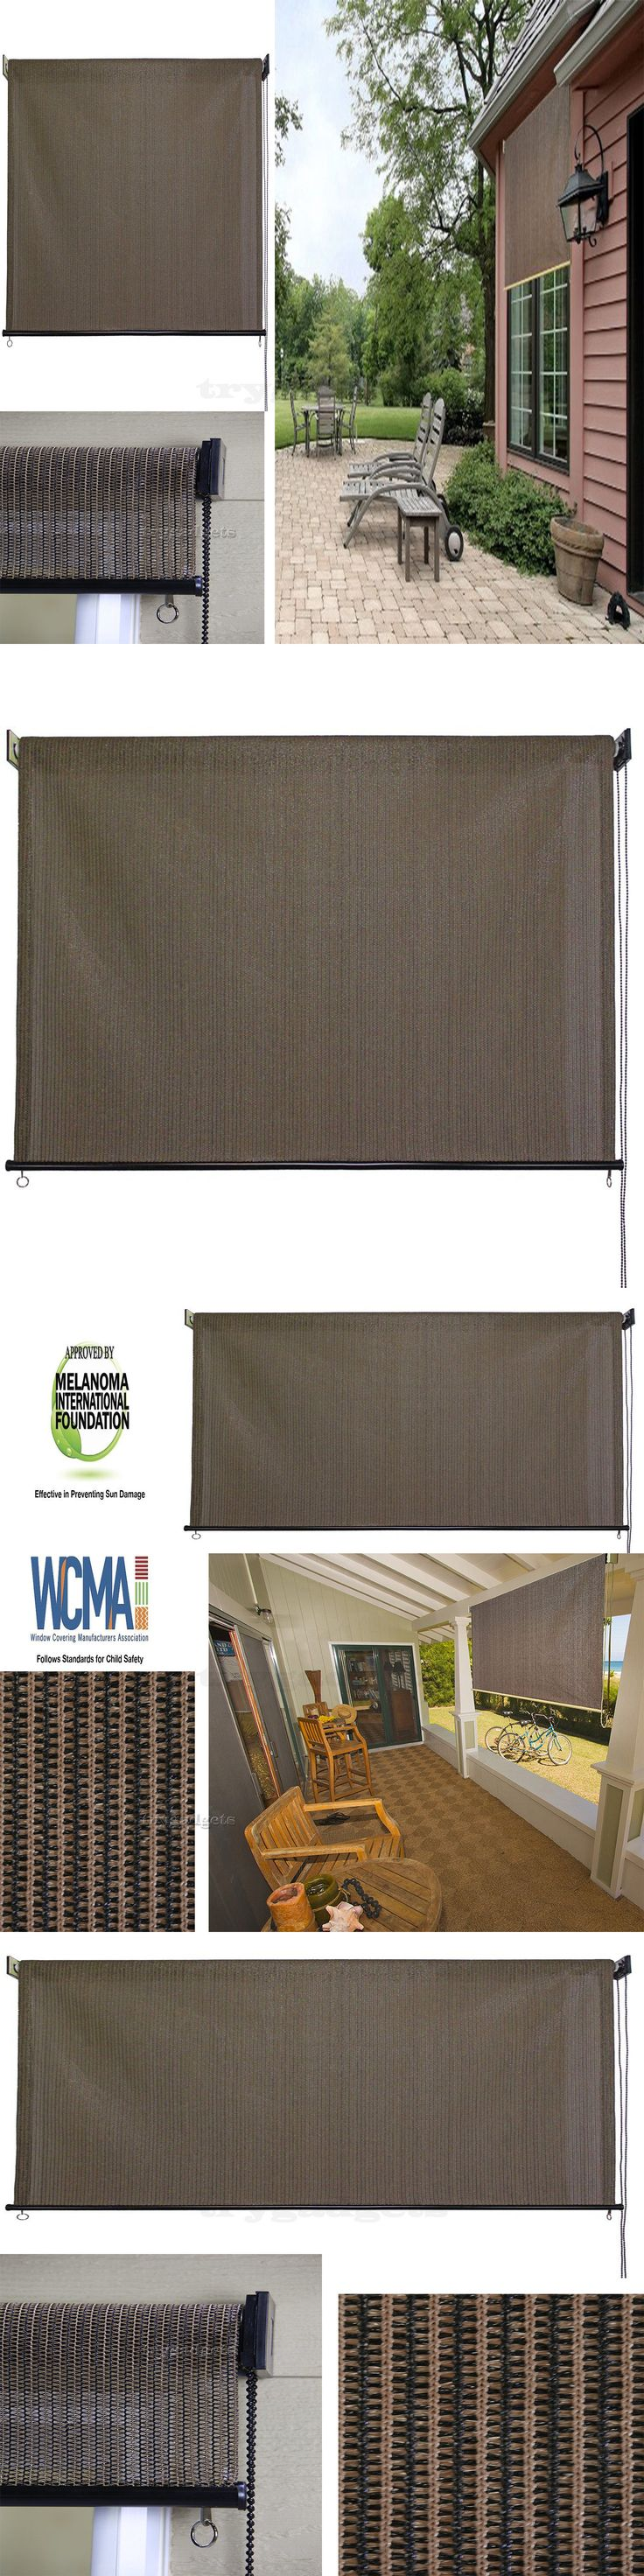 Outdoor patio blinds - Blinds And Shades 20585 6ft Exterior Blinders Shade Roller Outdoor Patio Roll Up Shades Blind